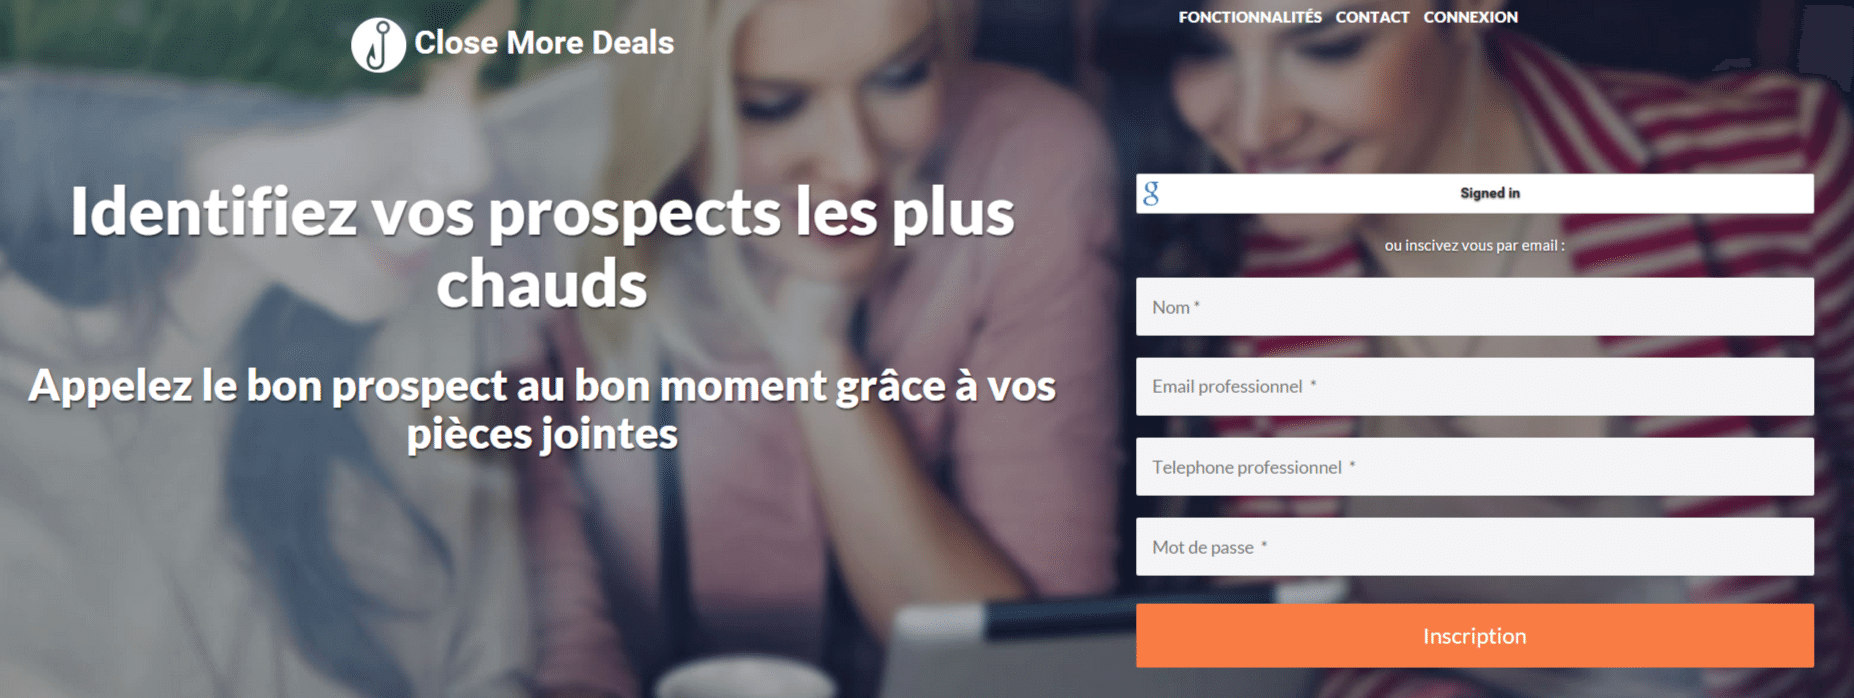 Home page du site Internet Close More Deals